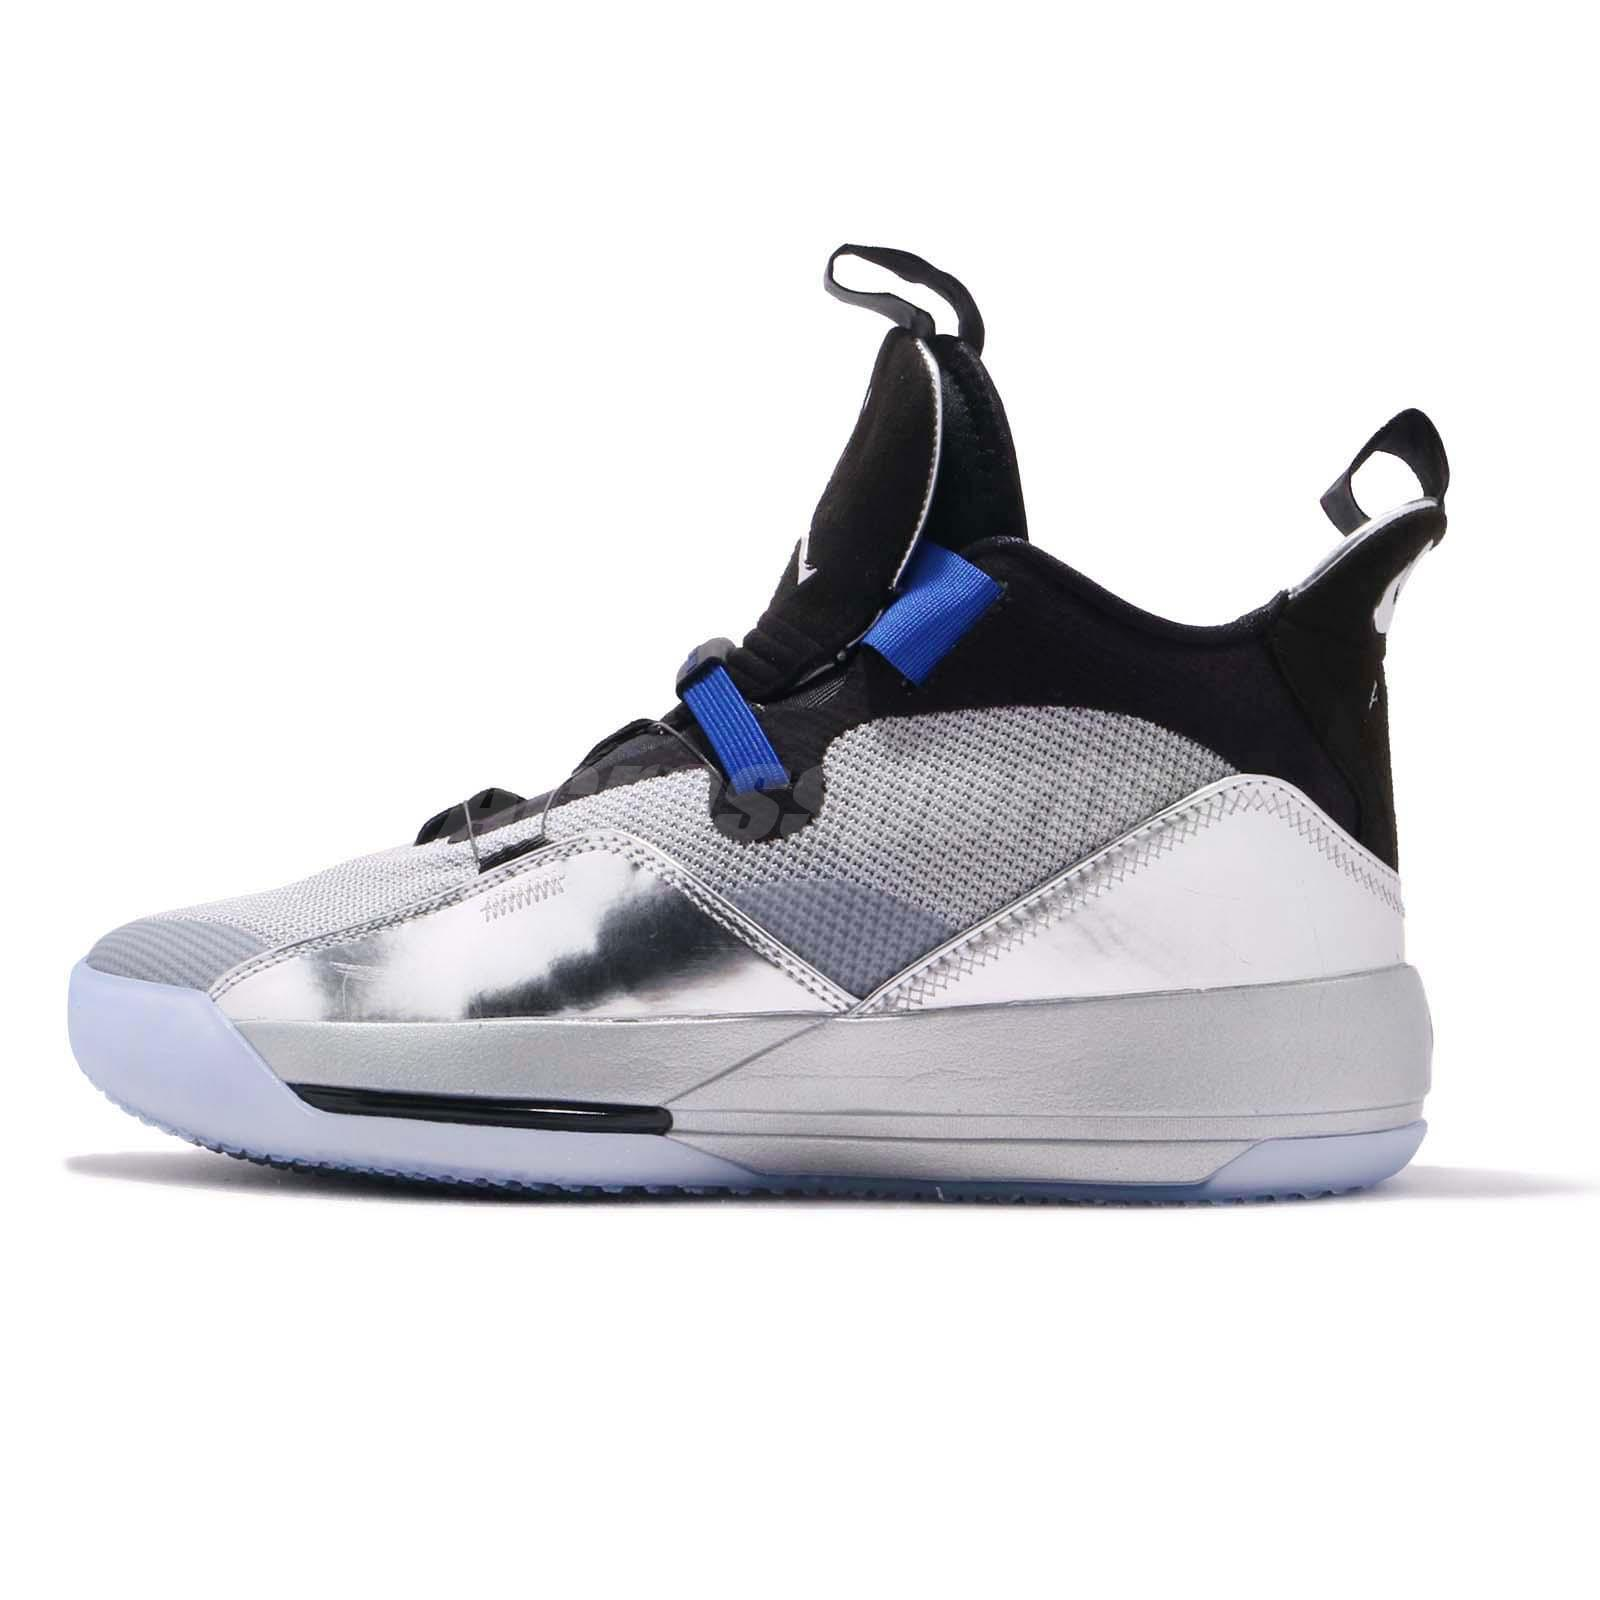 Nike Air Jordan 33 XIII Black Silver NBA All Star Game Charlotte 2019  BV5072-005 d505eb01f